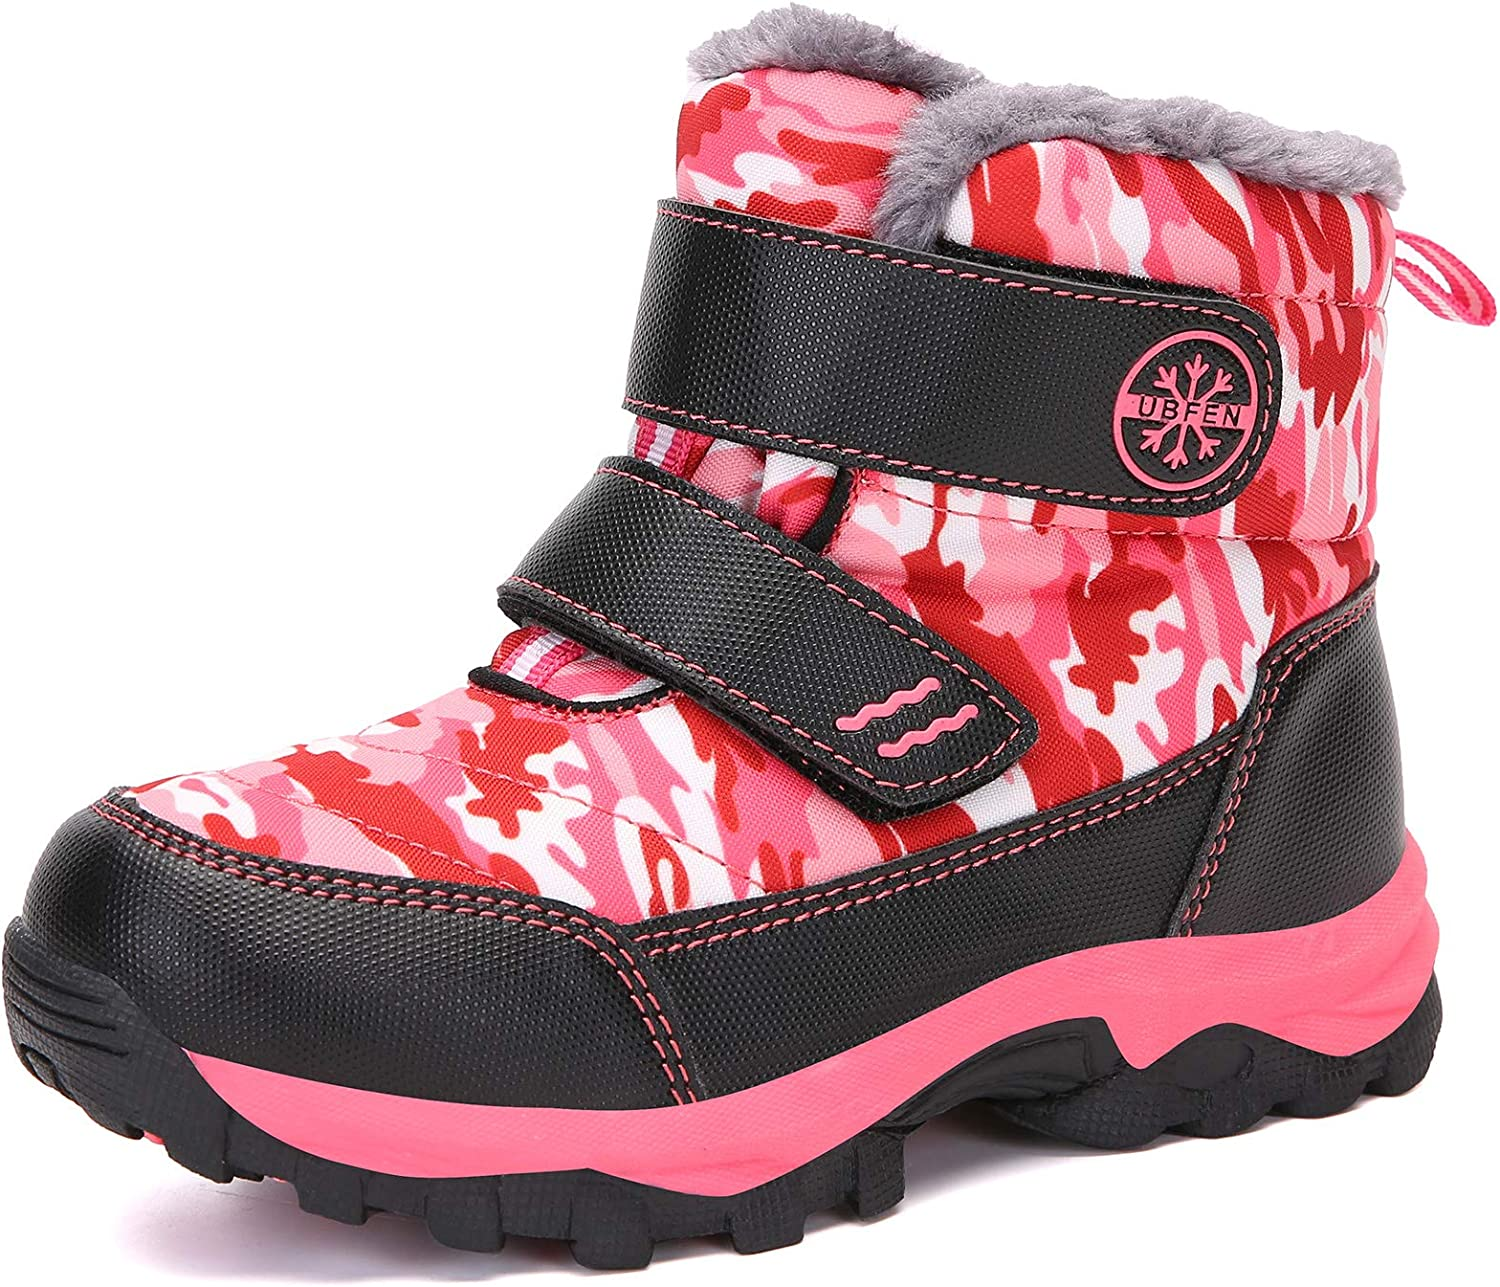 UBFEN Kids Sales of SALE items from new works Snow Boots Boys Girls Warm Outdoor Waterproof Winter Translated